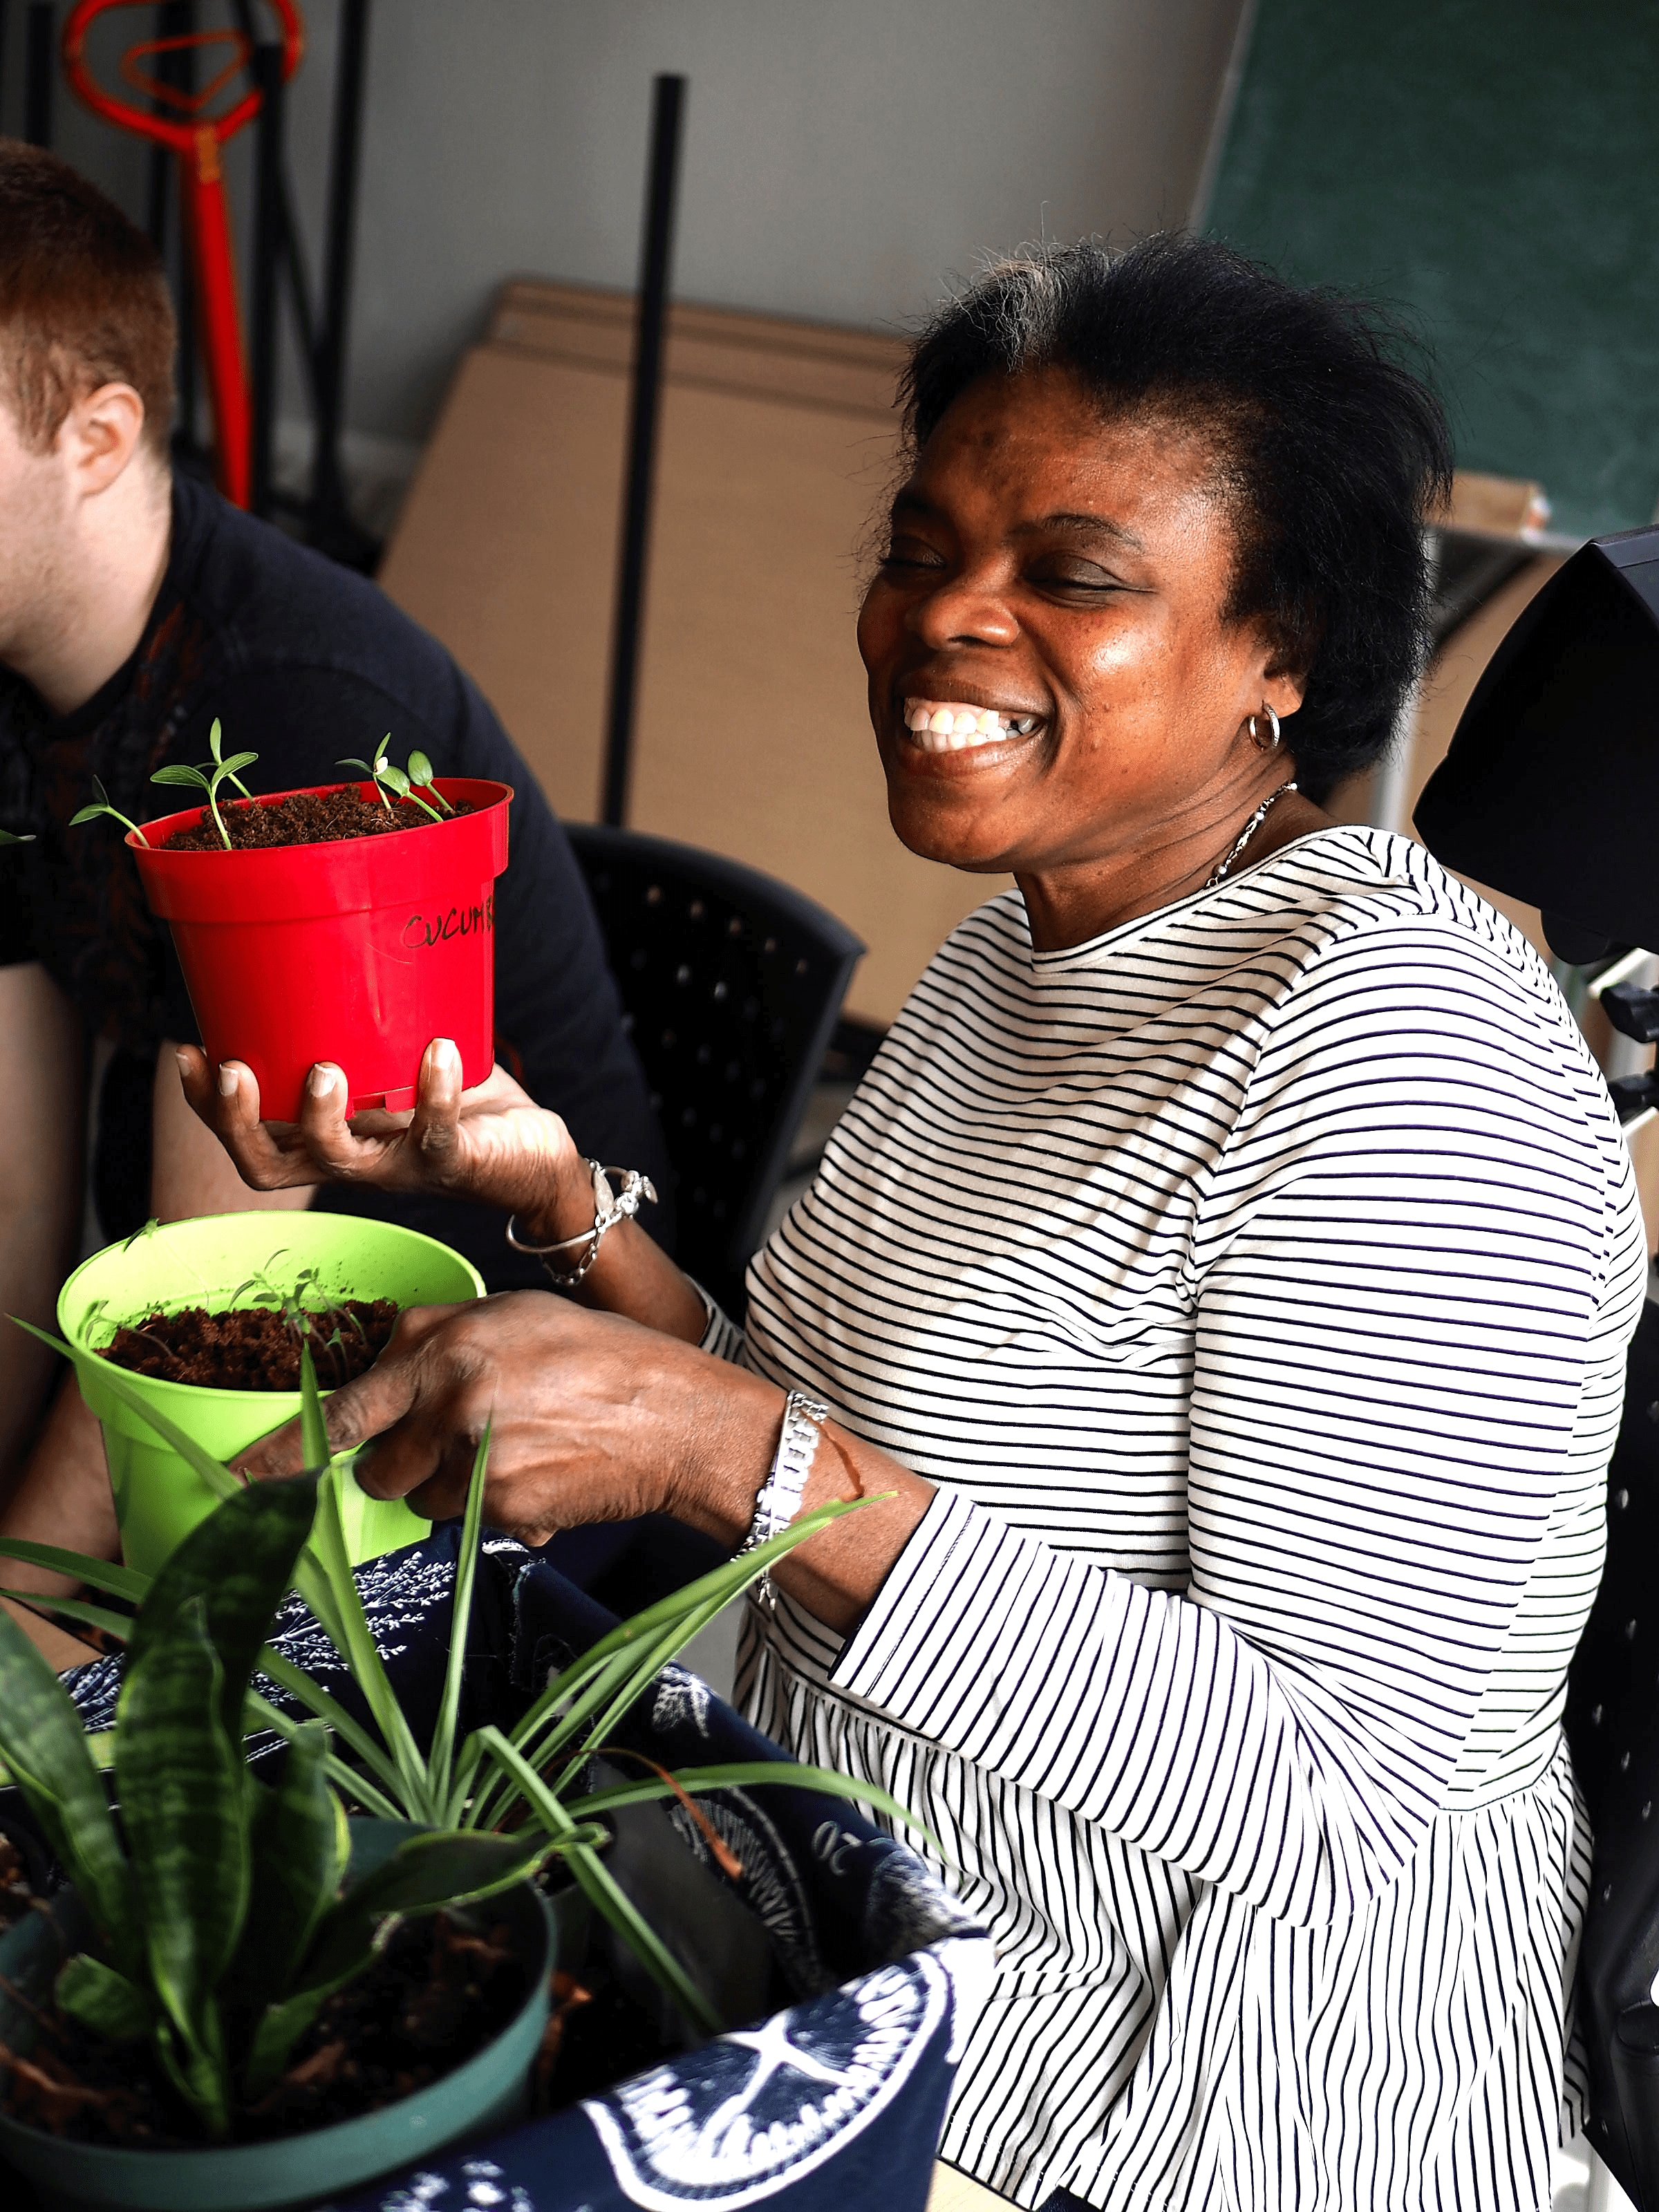 A woman is holding two potted plants and smiling. There is a third potted plant beside her.